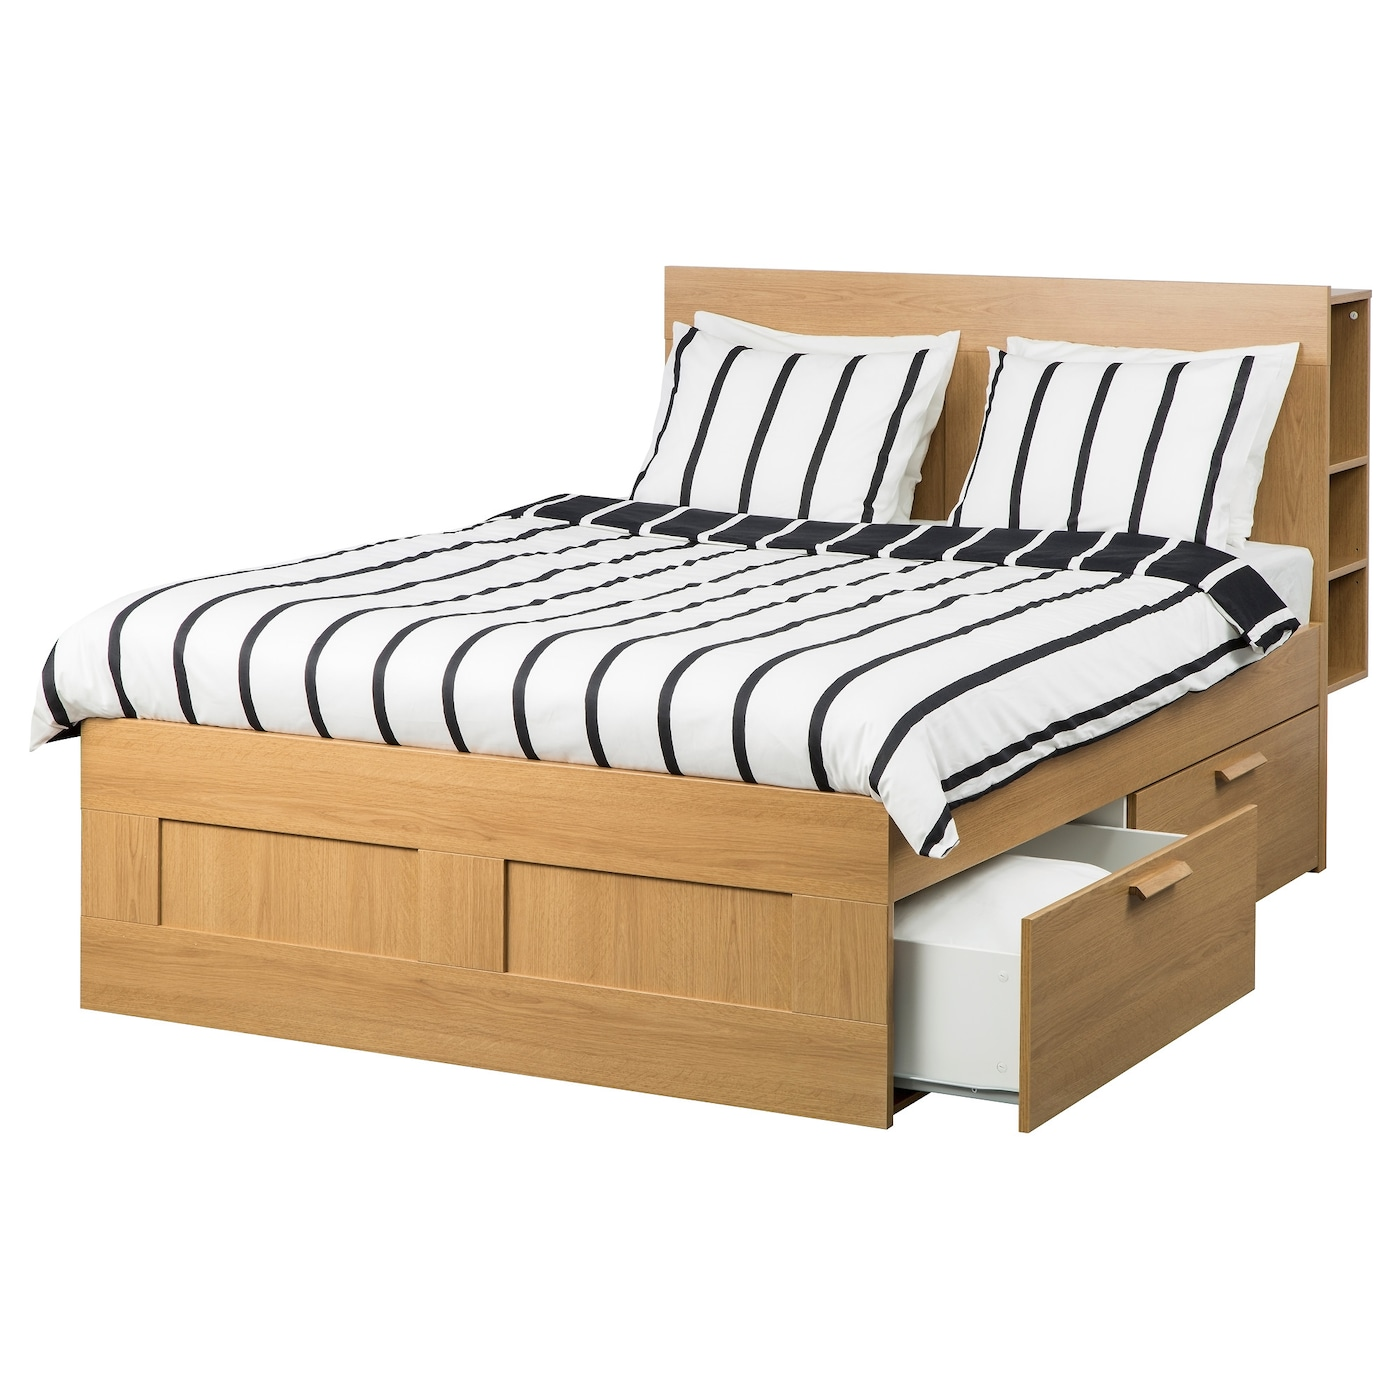 platform bed zinus headboard products steel frame